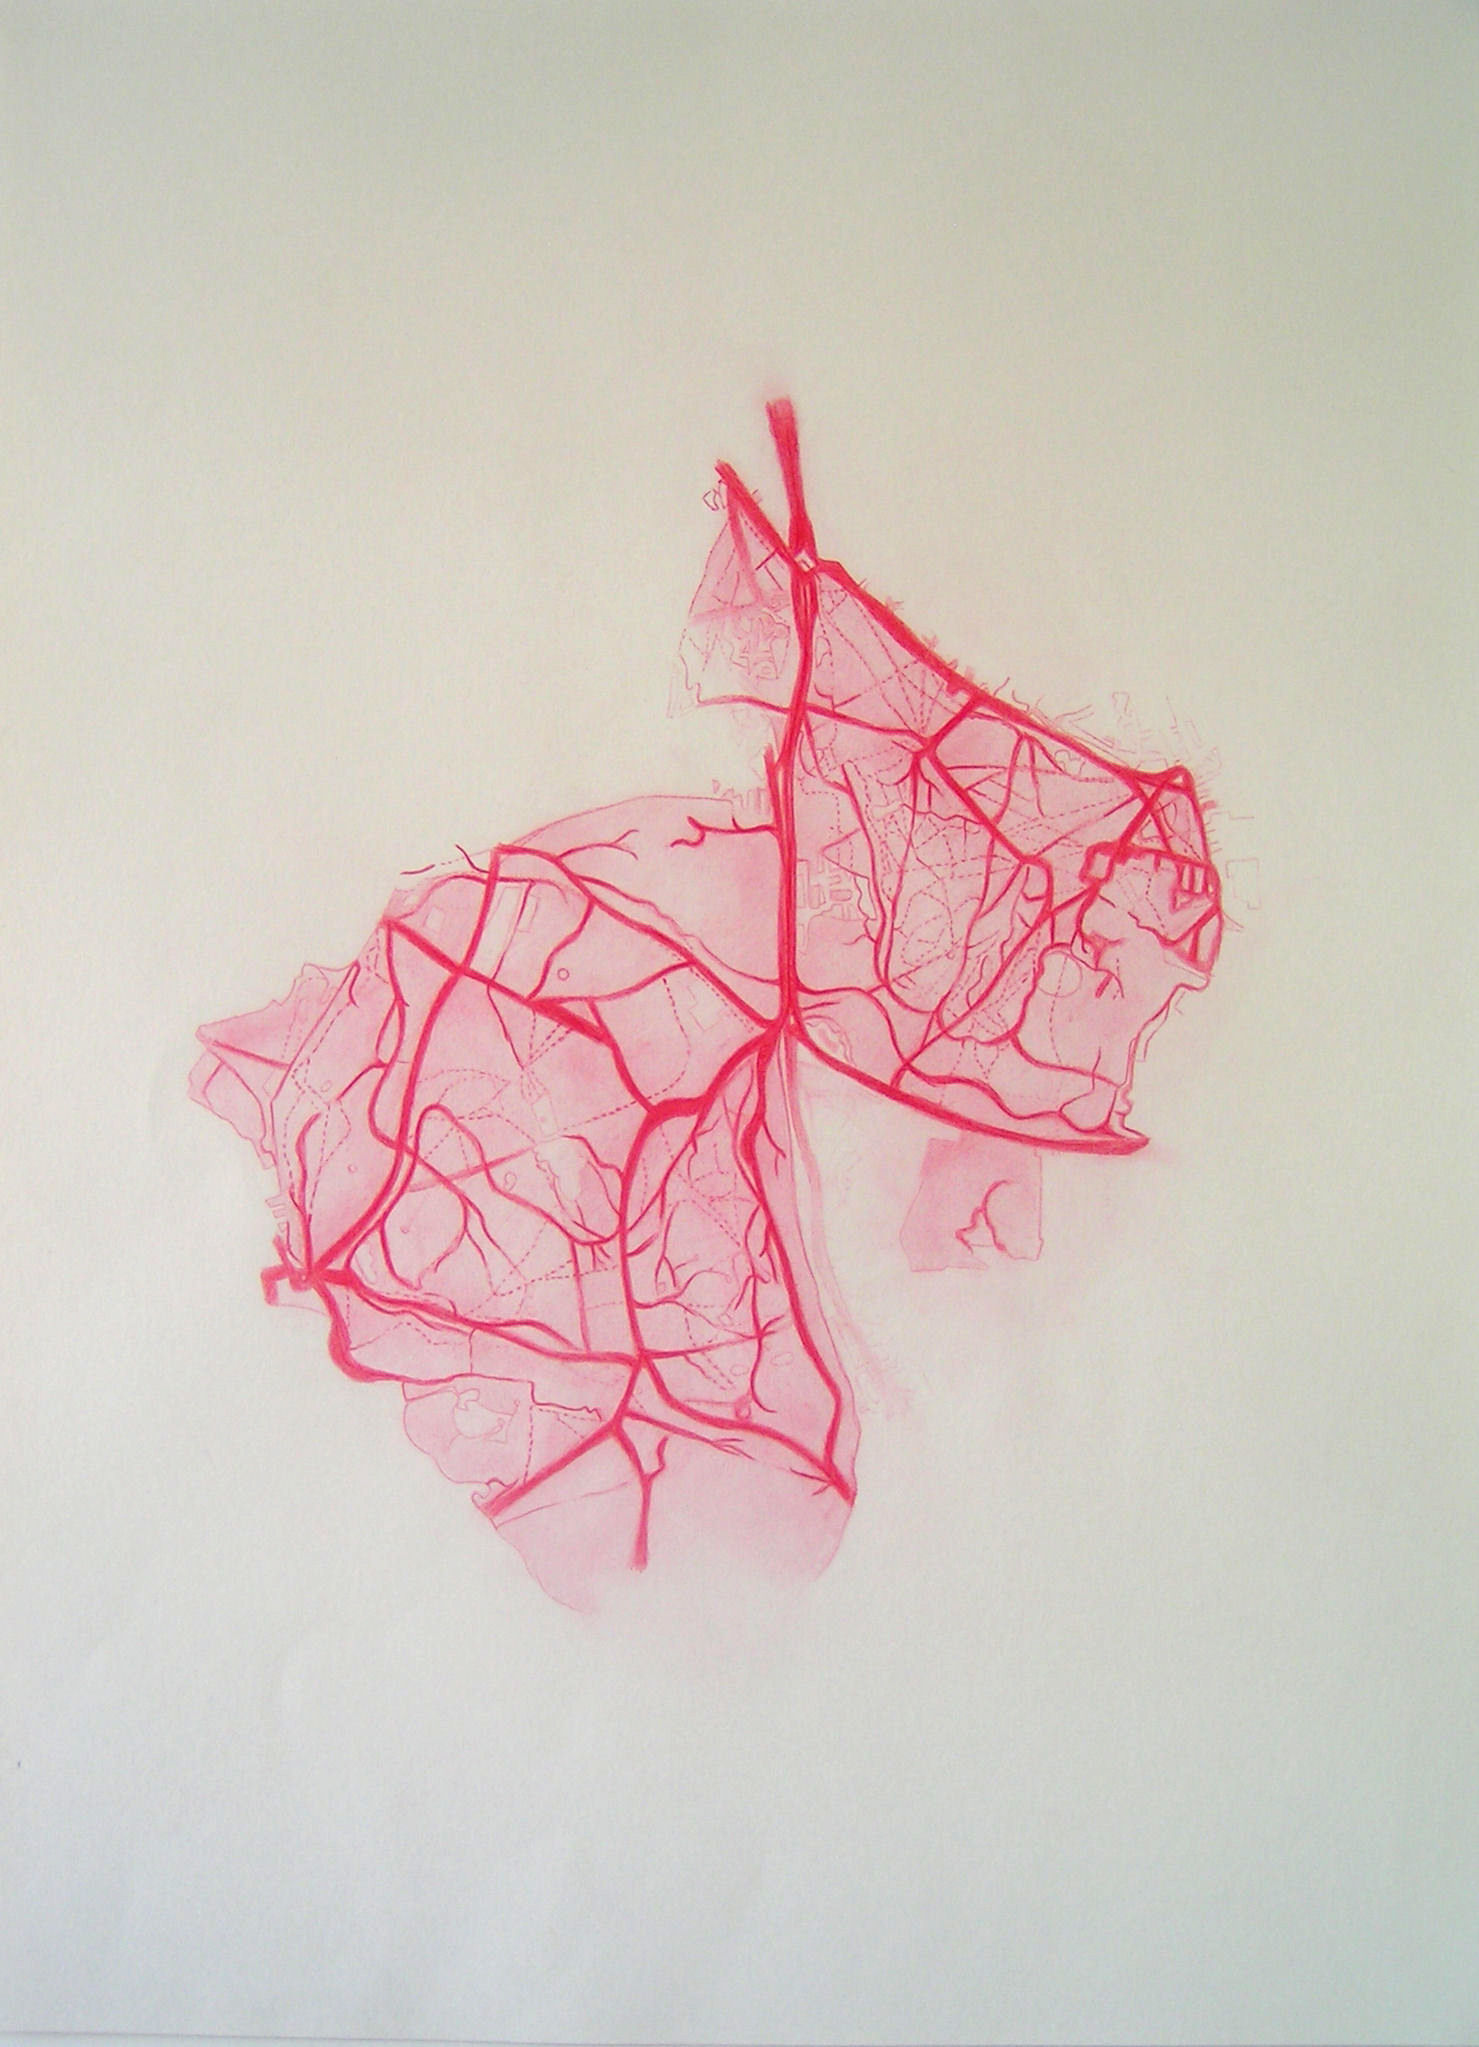 Emma J Williams 'Untitled Red Drawing No.1' pencil on paper